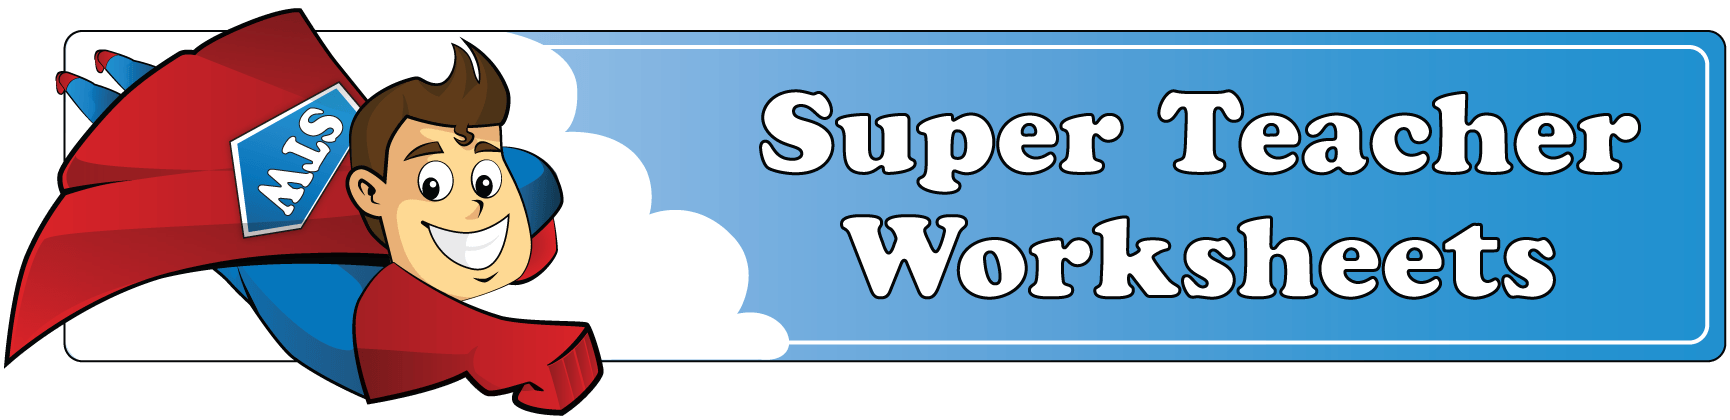 Worksheets Super Teacher Worksheet log in to super teacher worksheets worksheets